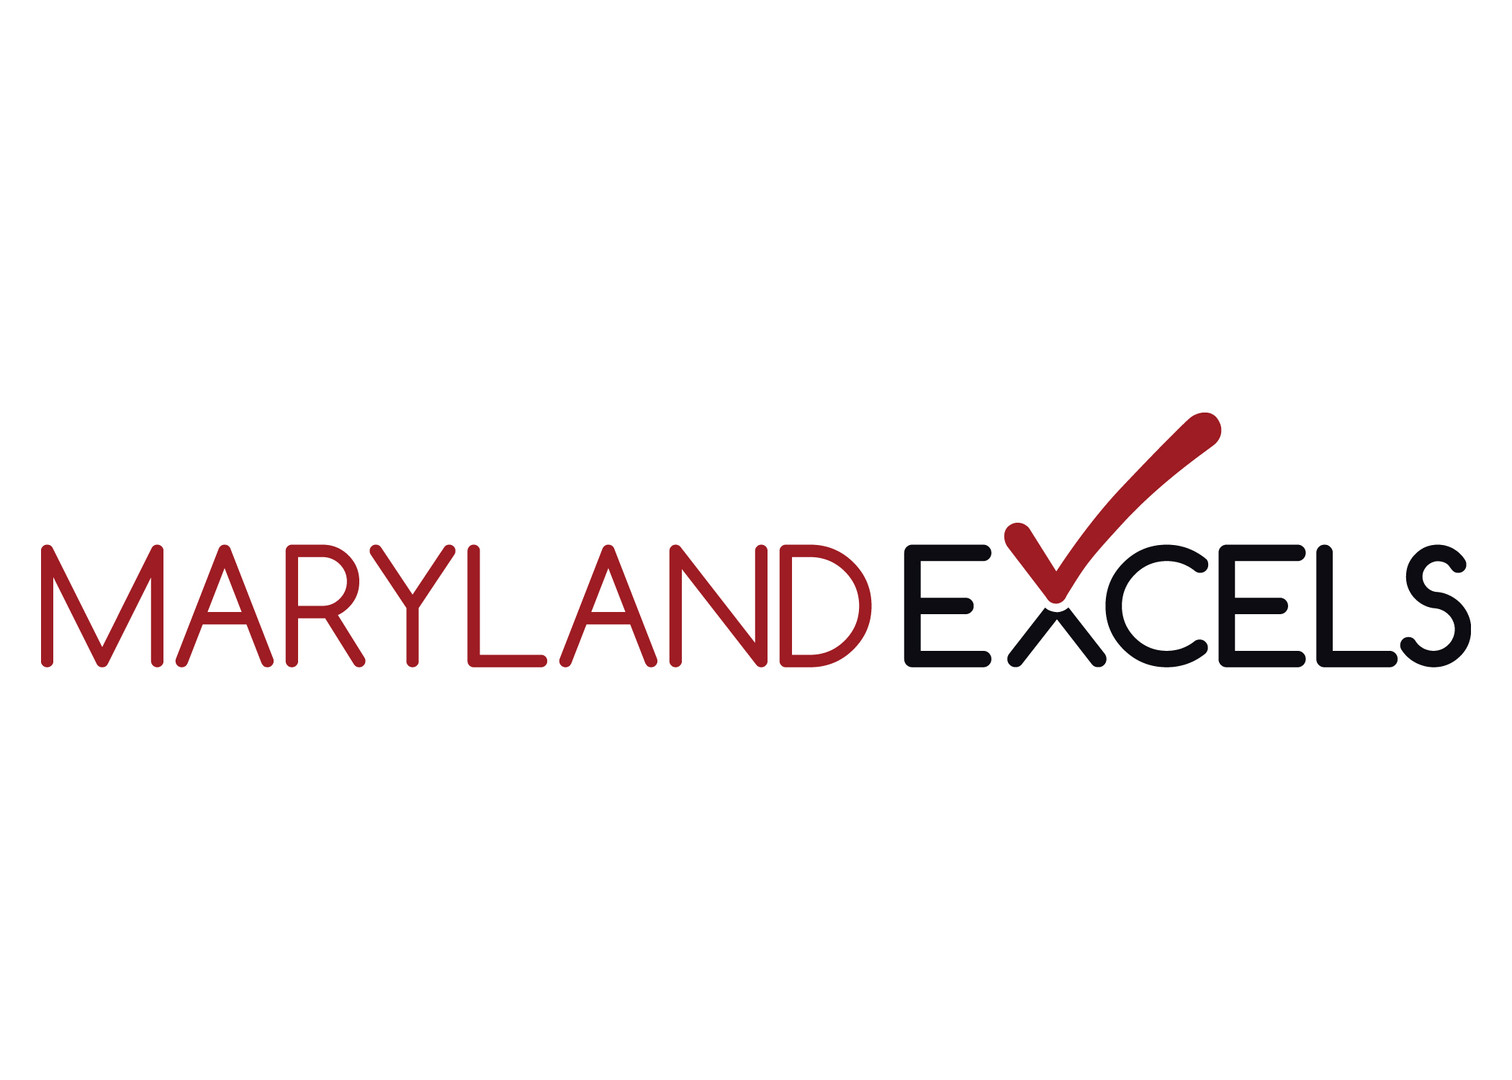 Maryland EXCELS